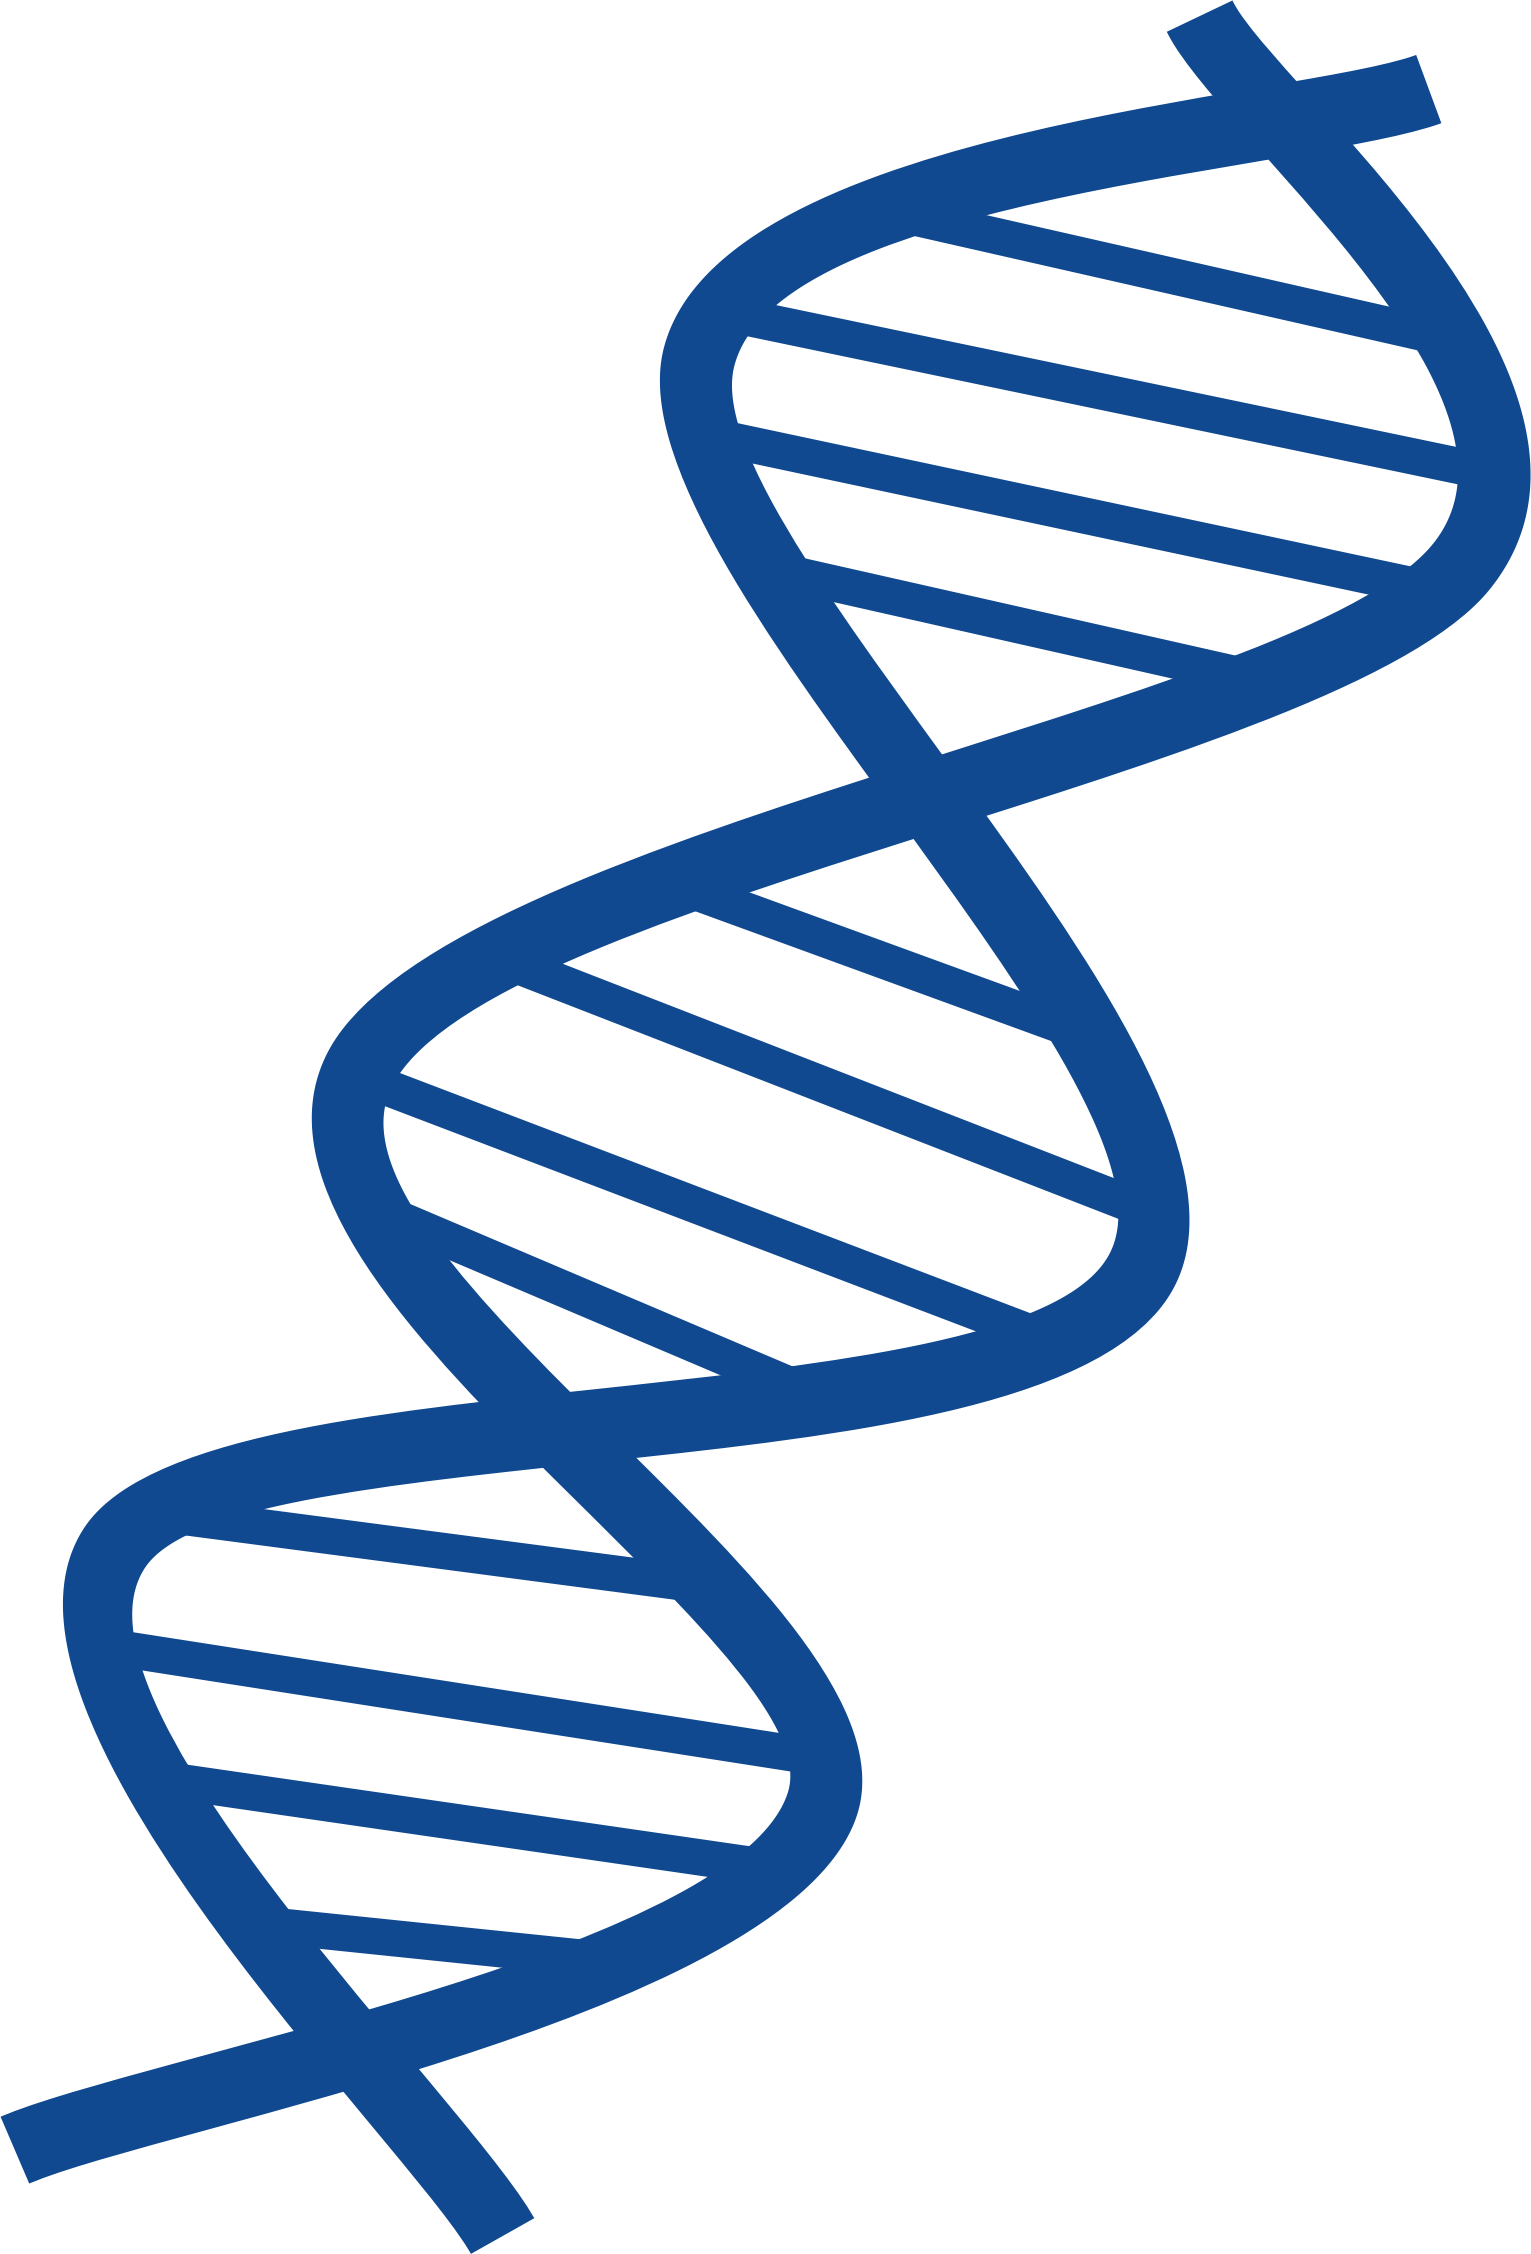 DNA Structure clipart Free Clip Panda Images dna%20clipart